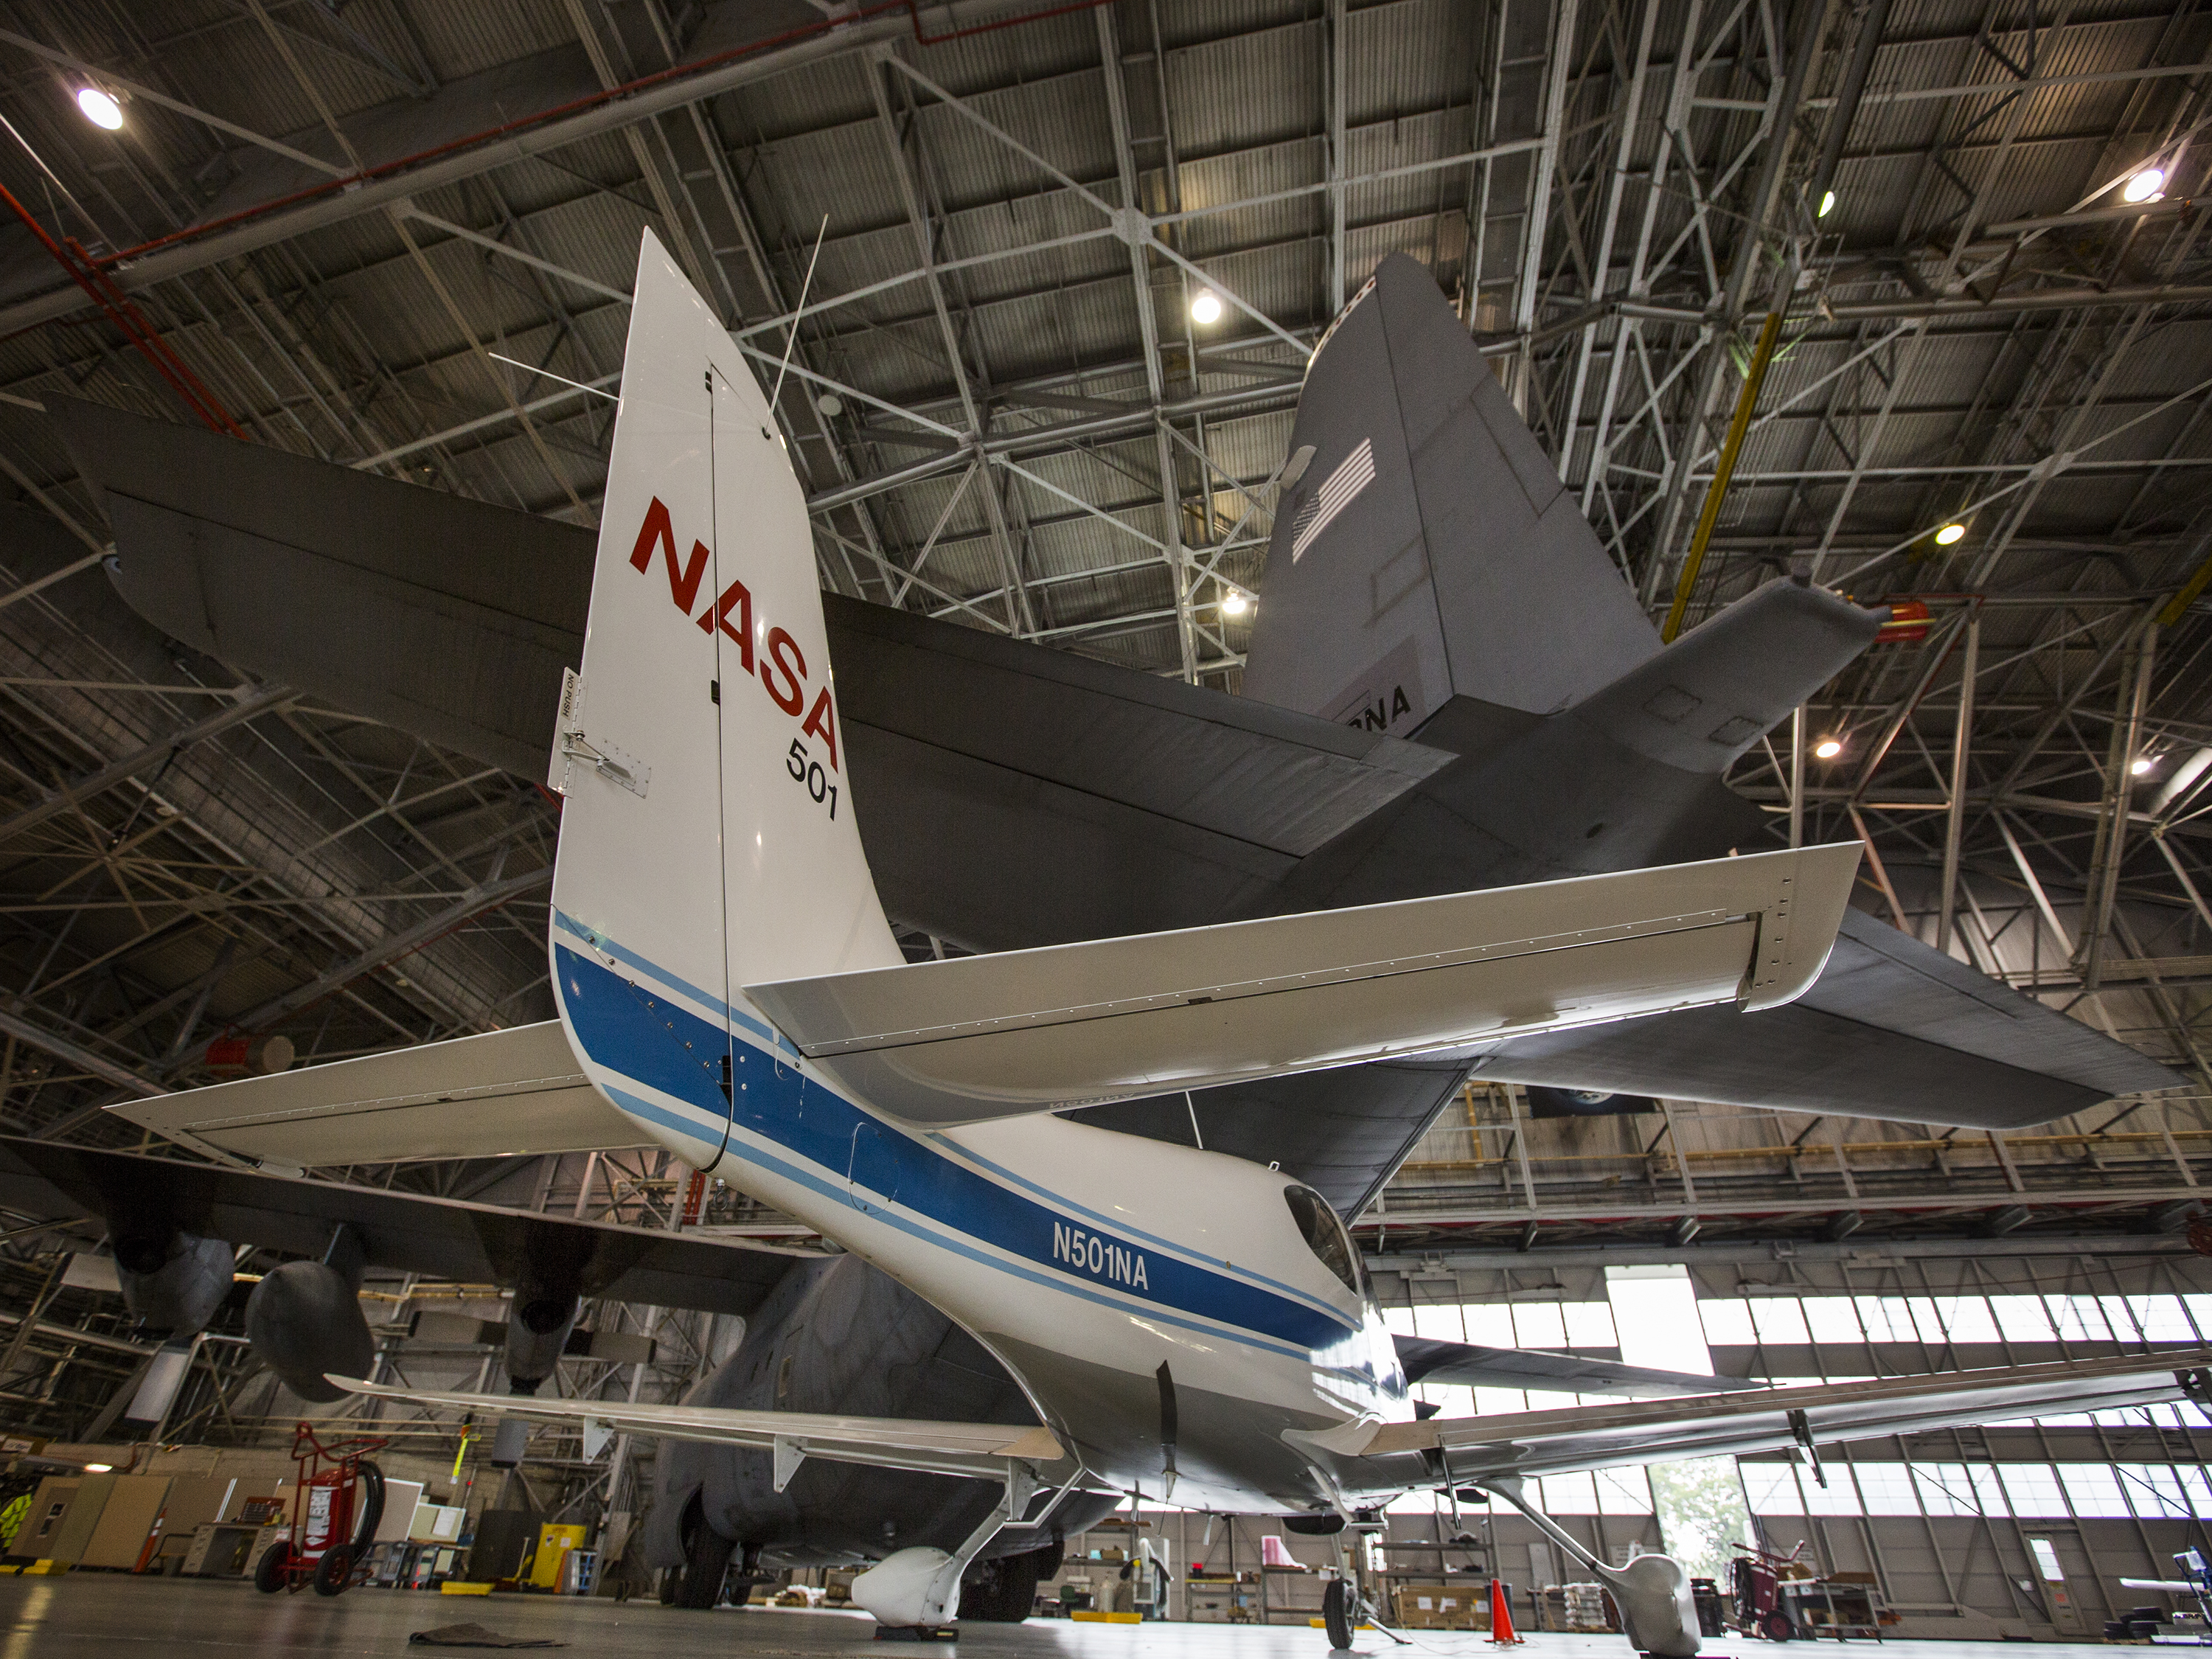 a nasa aircraft in hangar - photo #6